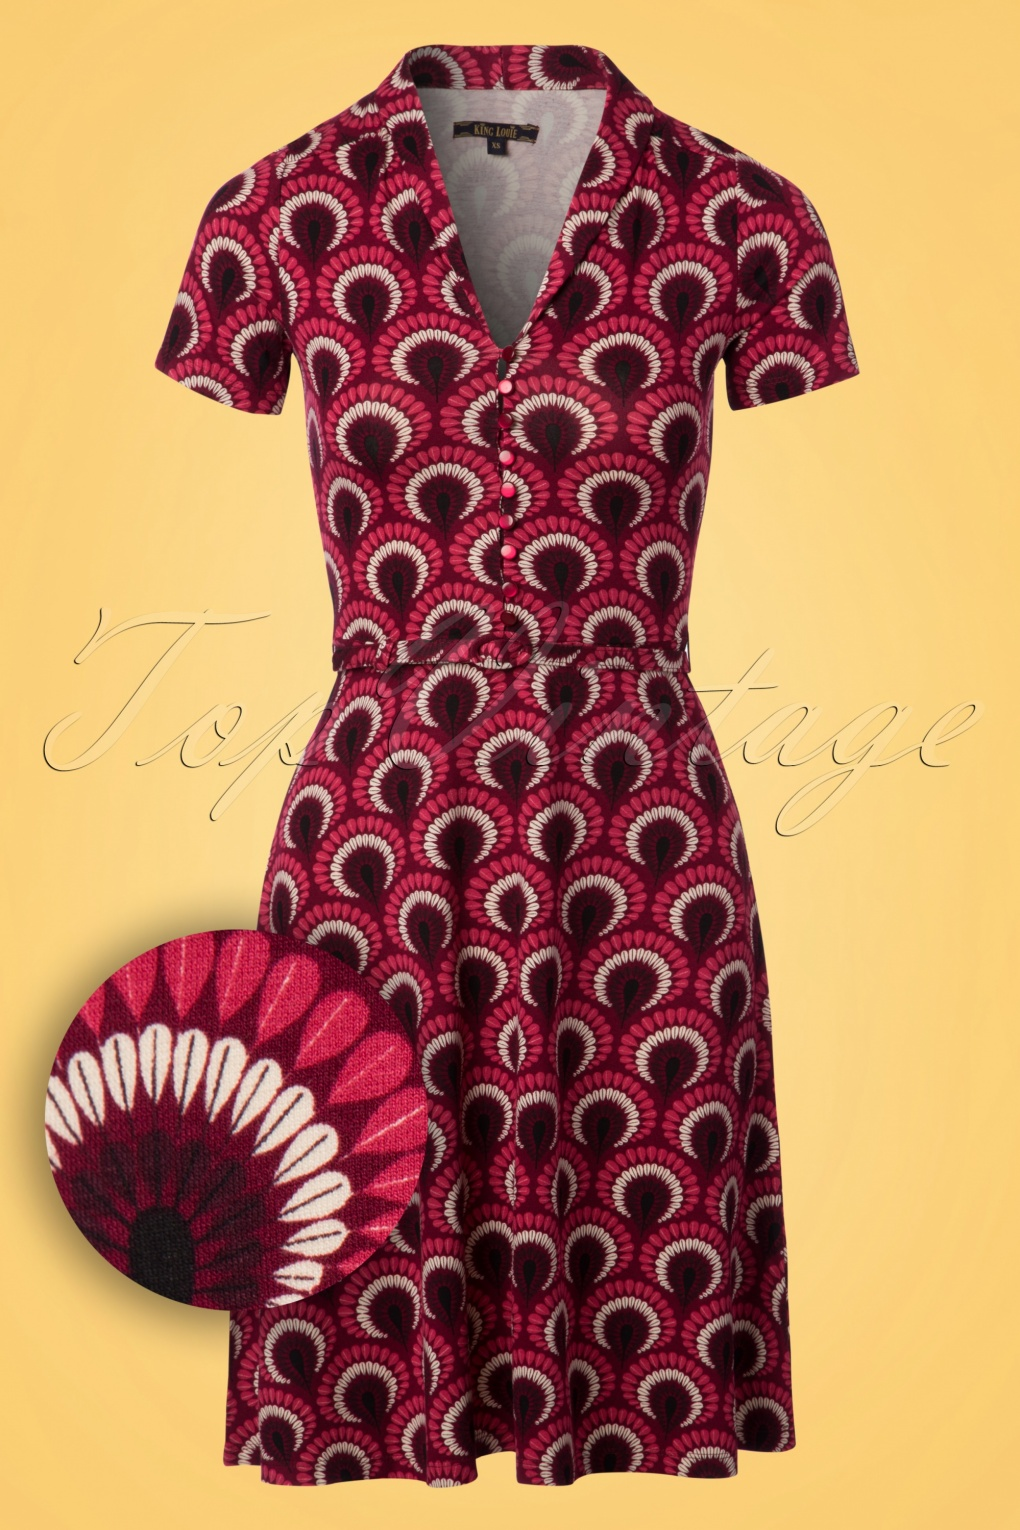 Plus Size Vintage Dresses, Plus Size Retro Dresses 60s Emmy Peacock Dress in Beaujolais Red £88.52 AT vintagedancer.com